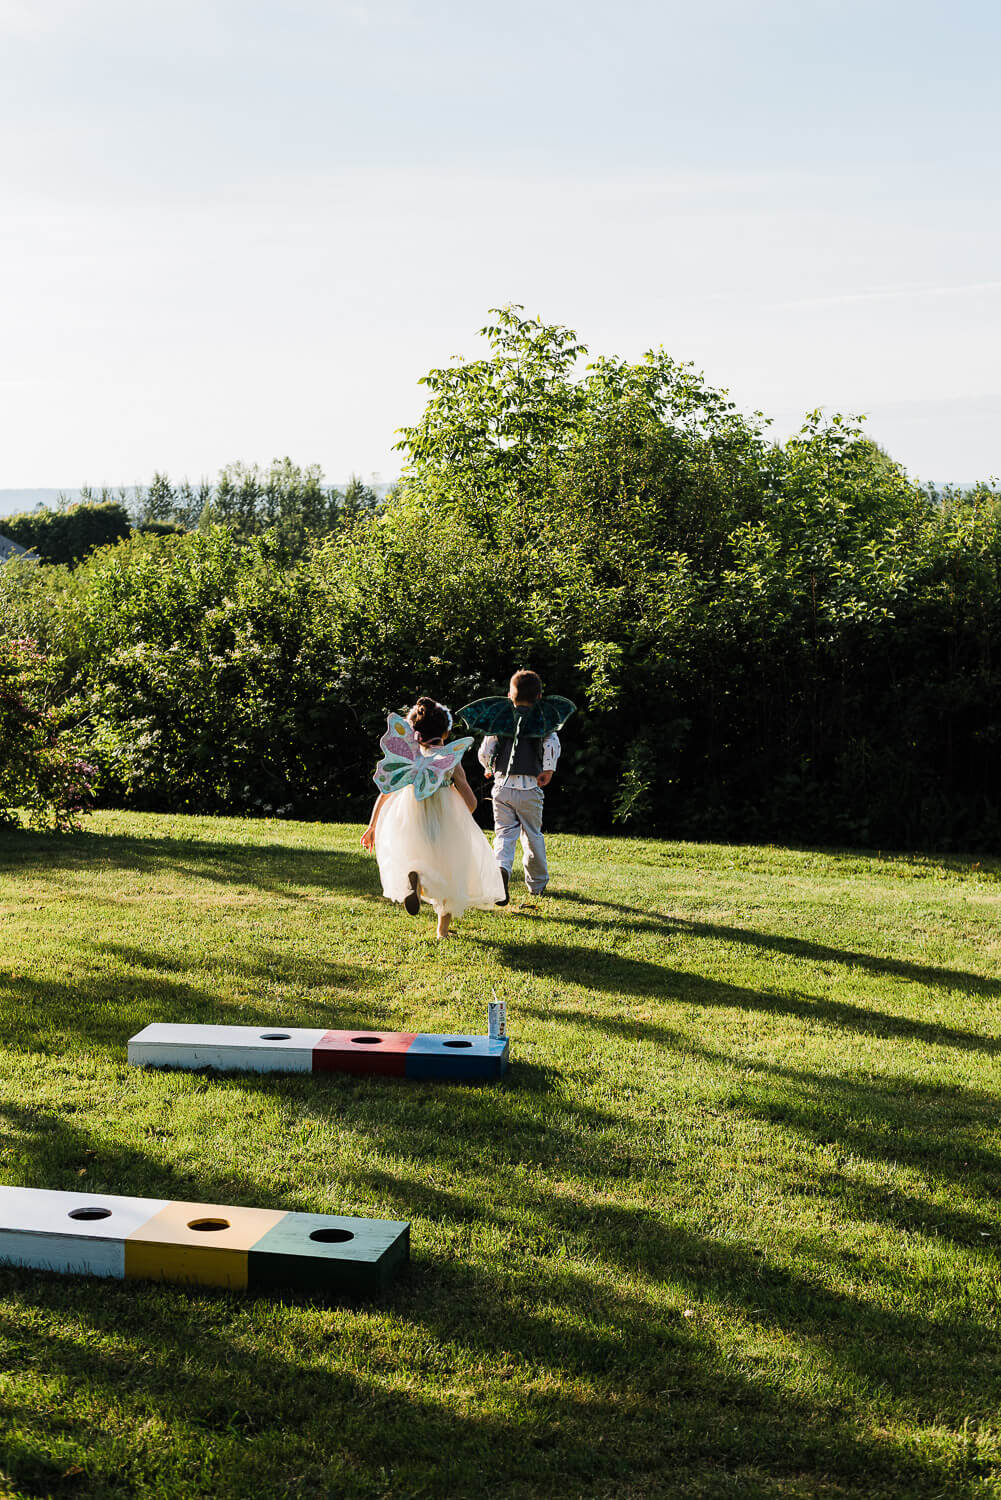 kids at summer wedding running on the lawn